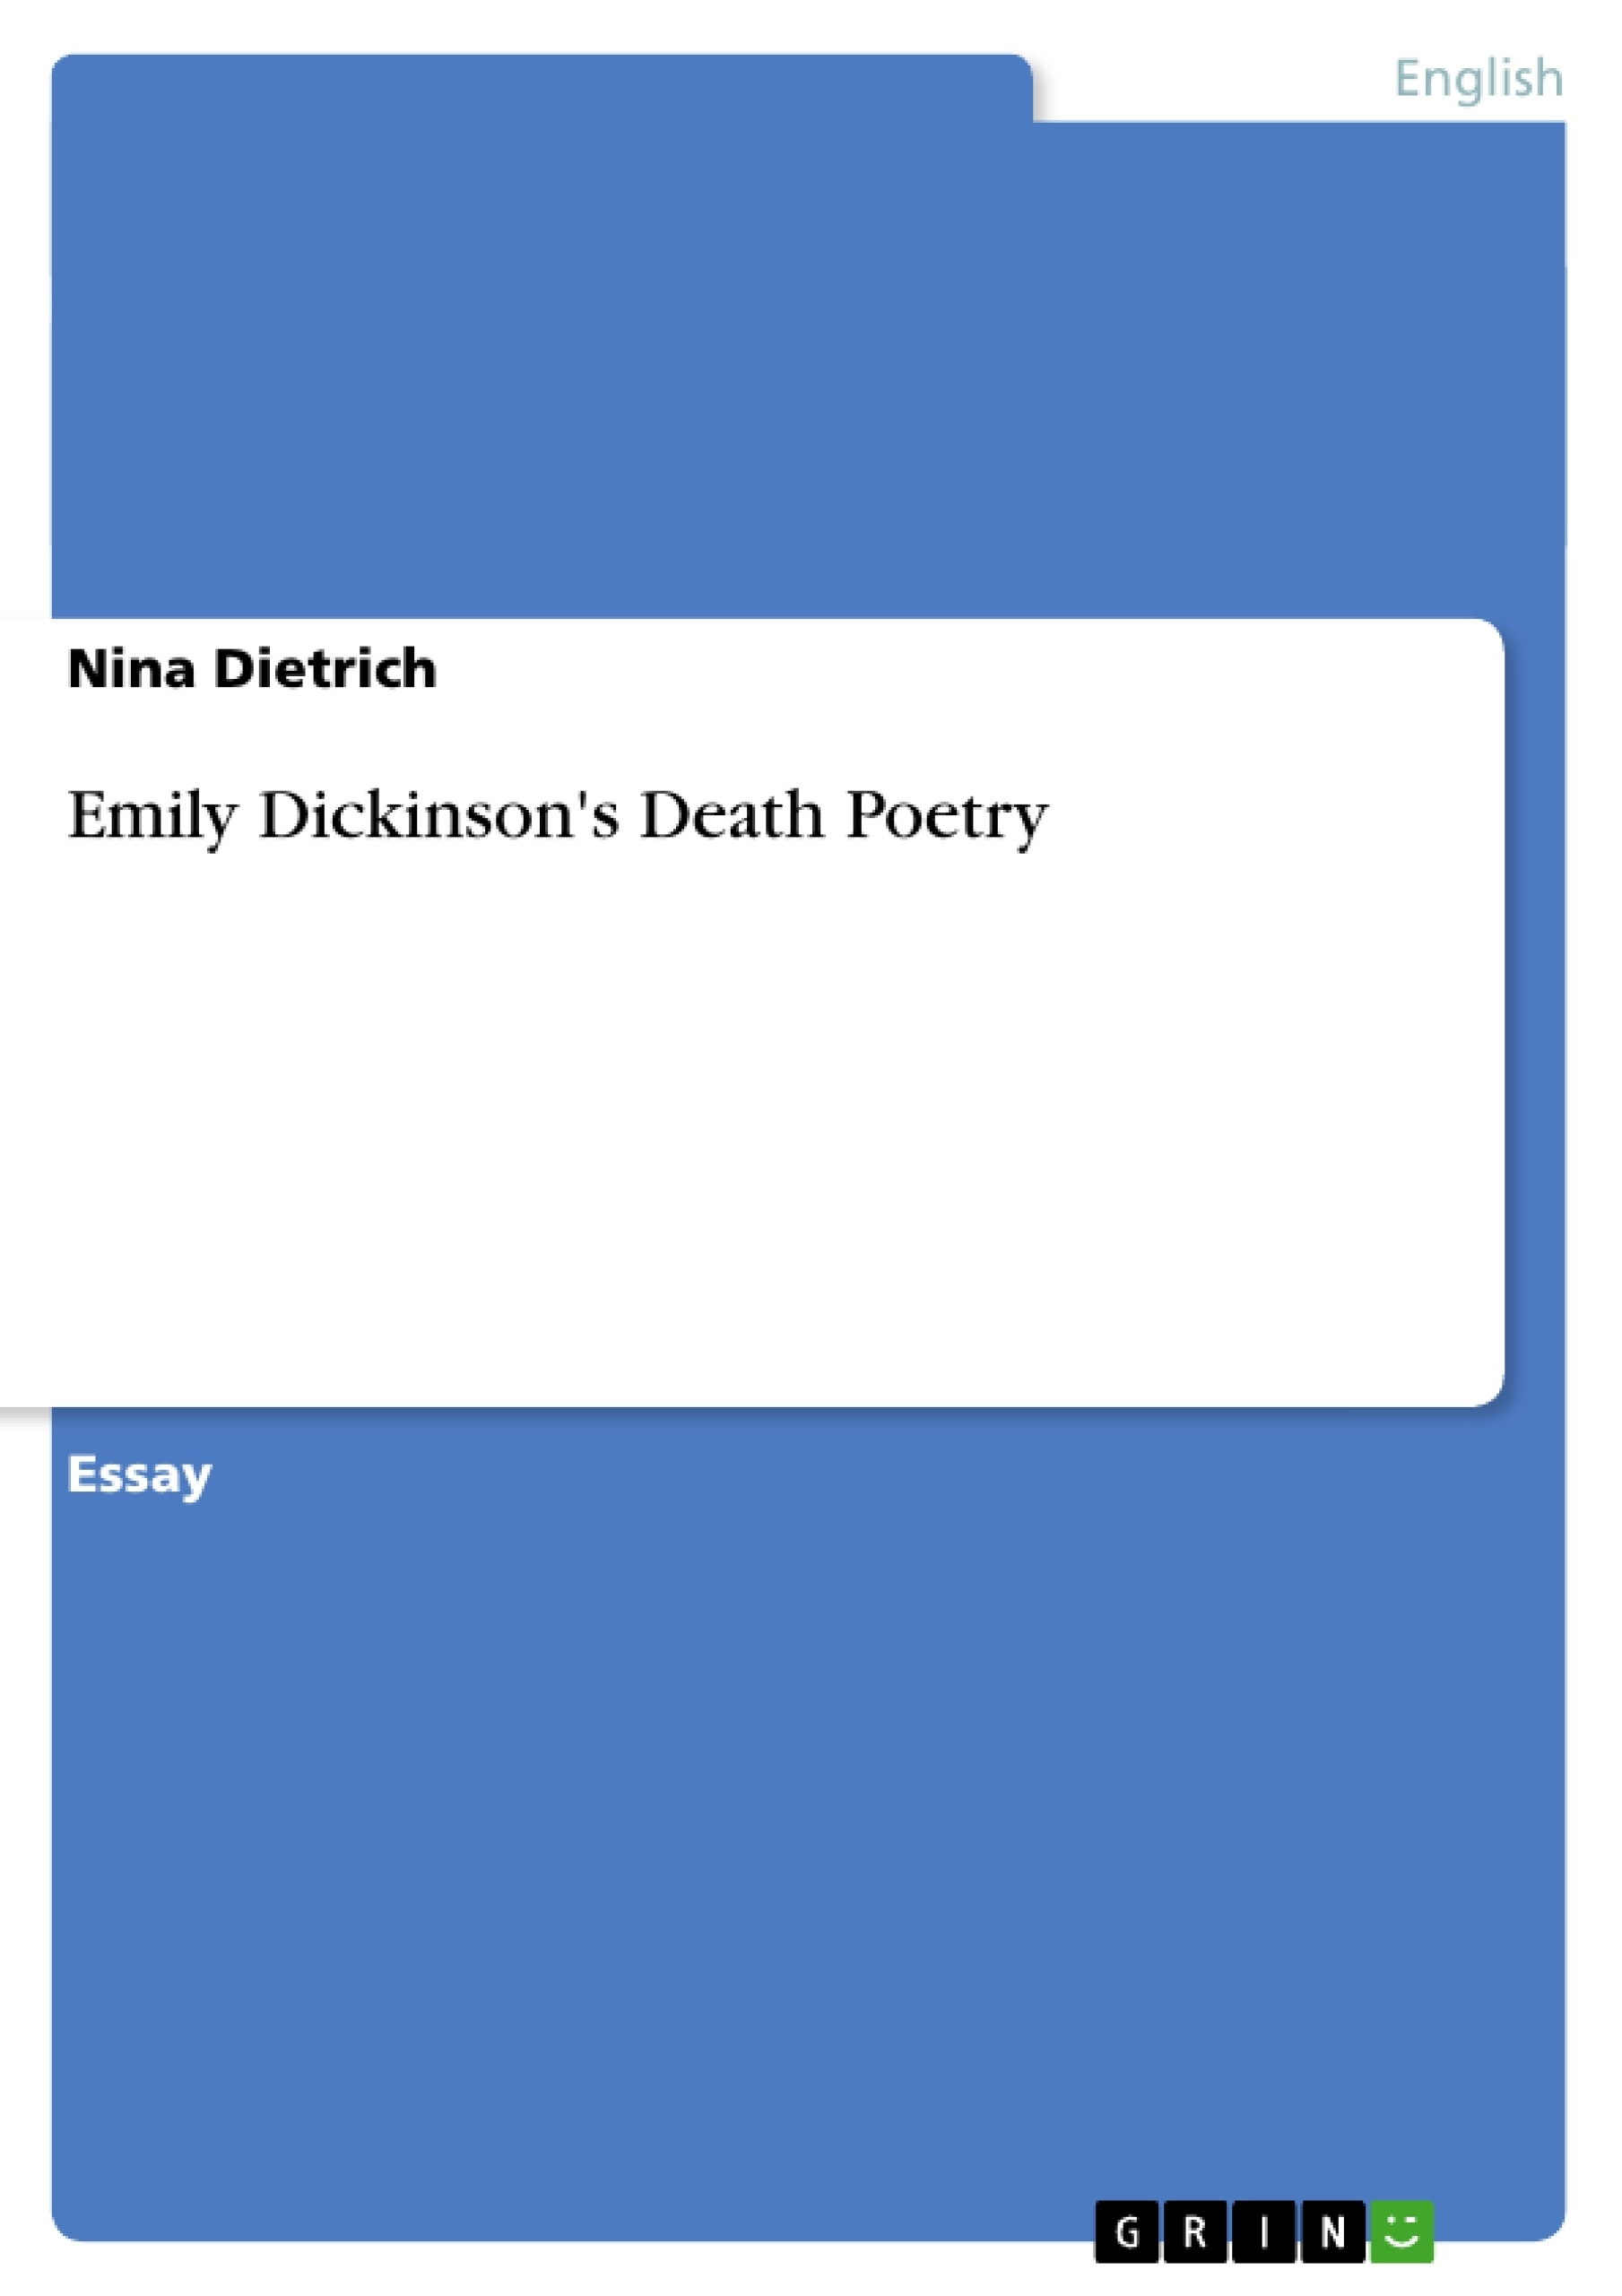 emily dickinson s death poetry publish your master s thesis  upload your own papers earn money and win an iphone x